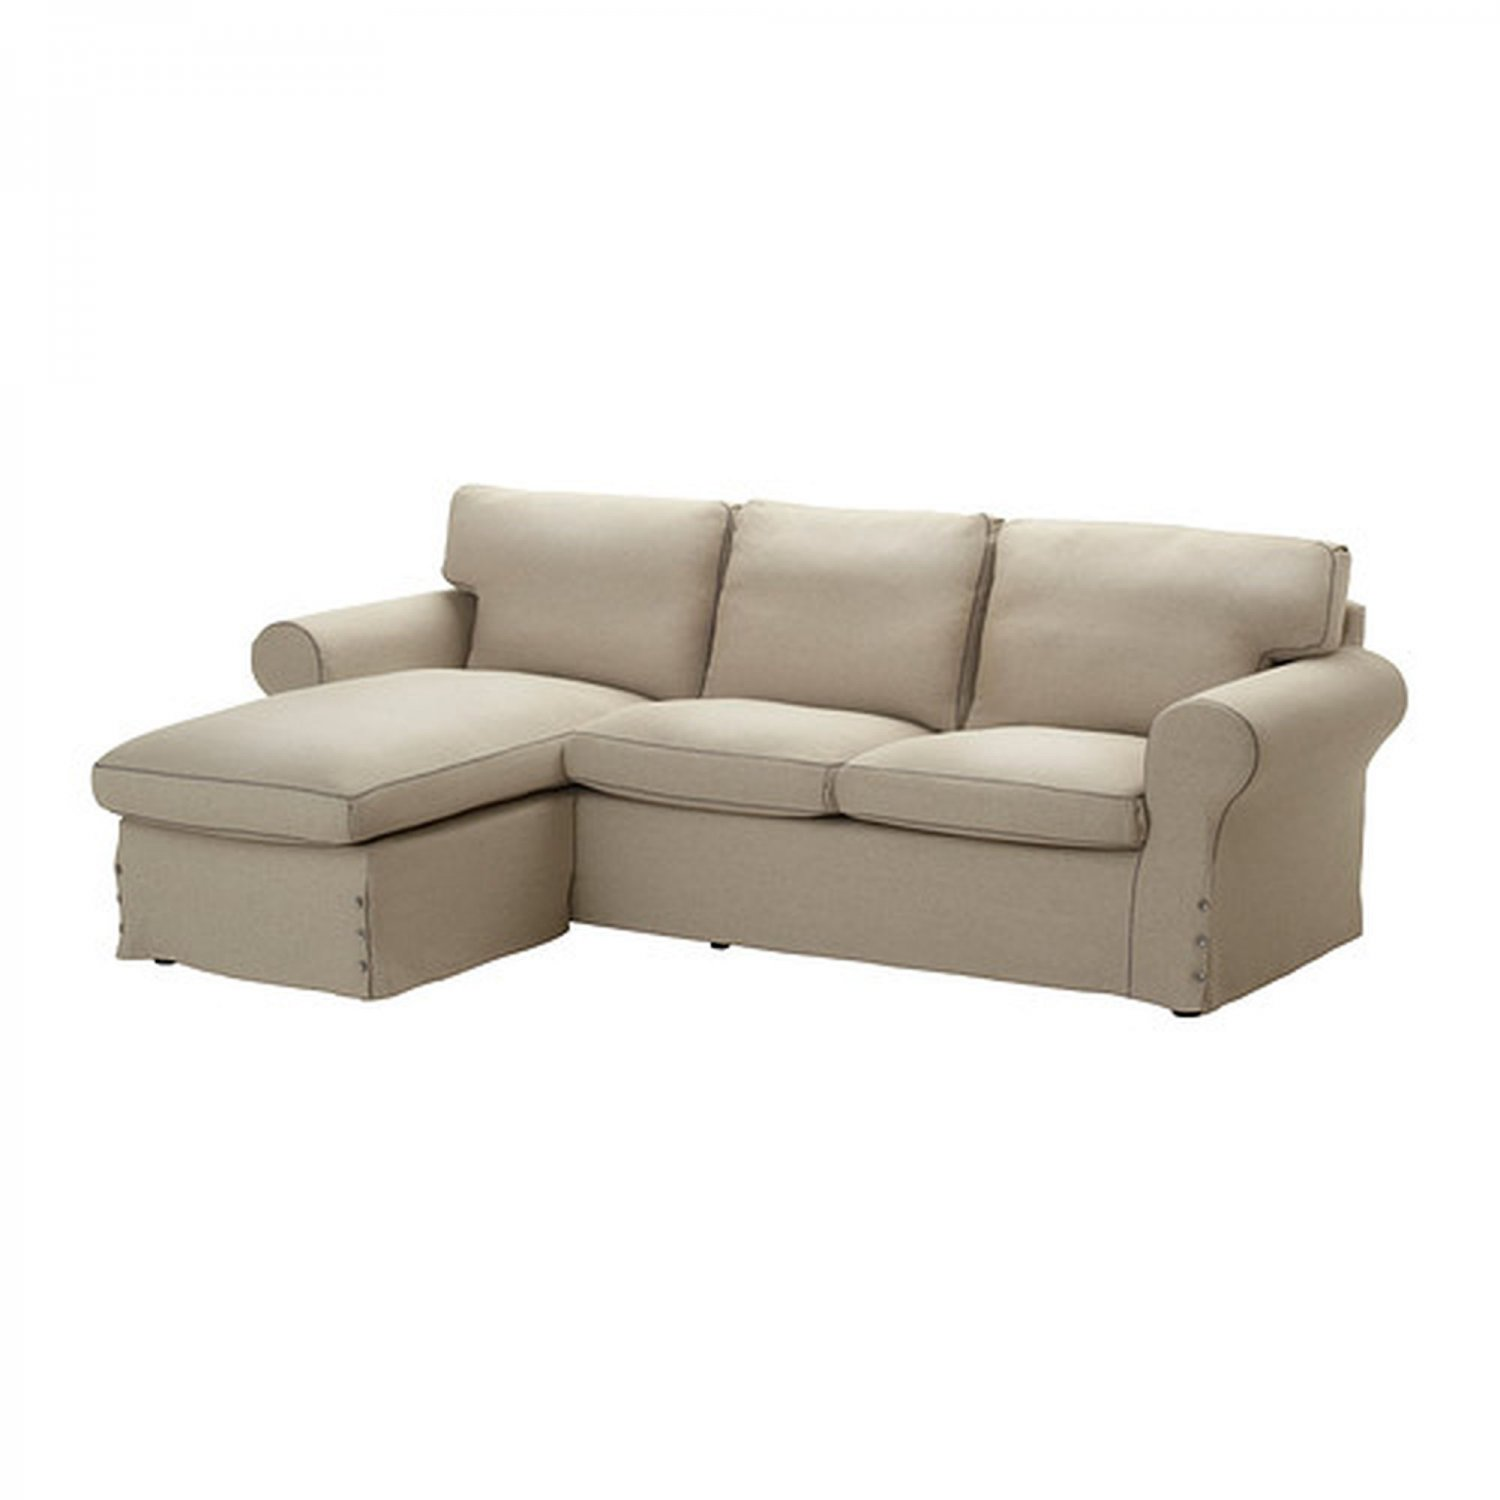 IKEA EKTORP Loveseat sofa w Chaise COVER 3-seat sectional Slipcover RISANE NATURAL Linen beige